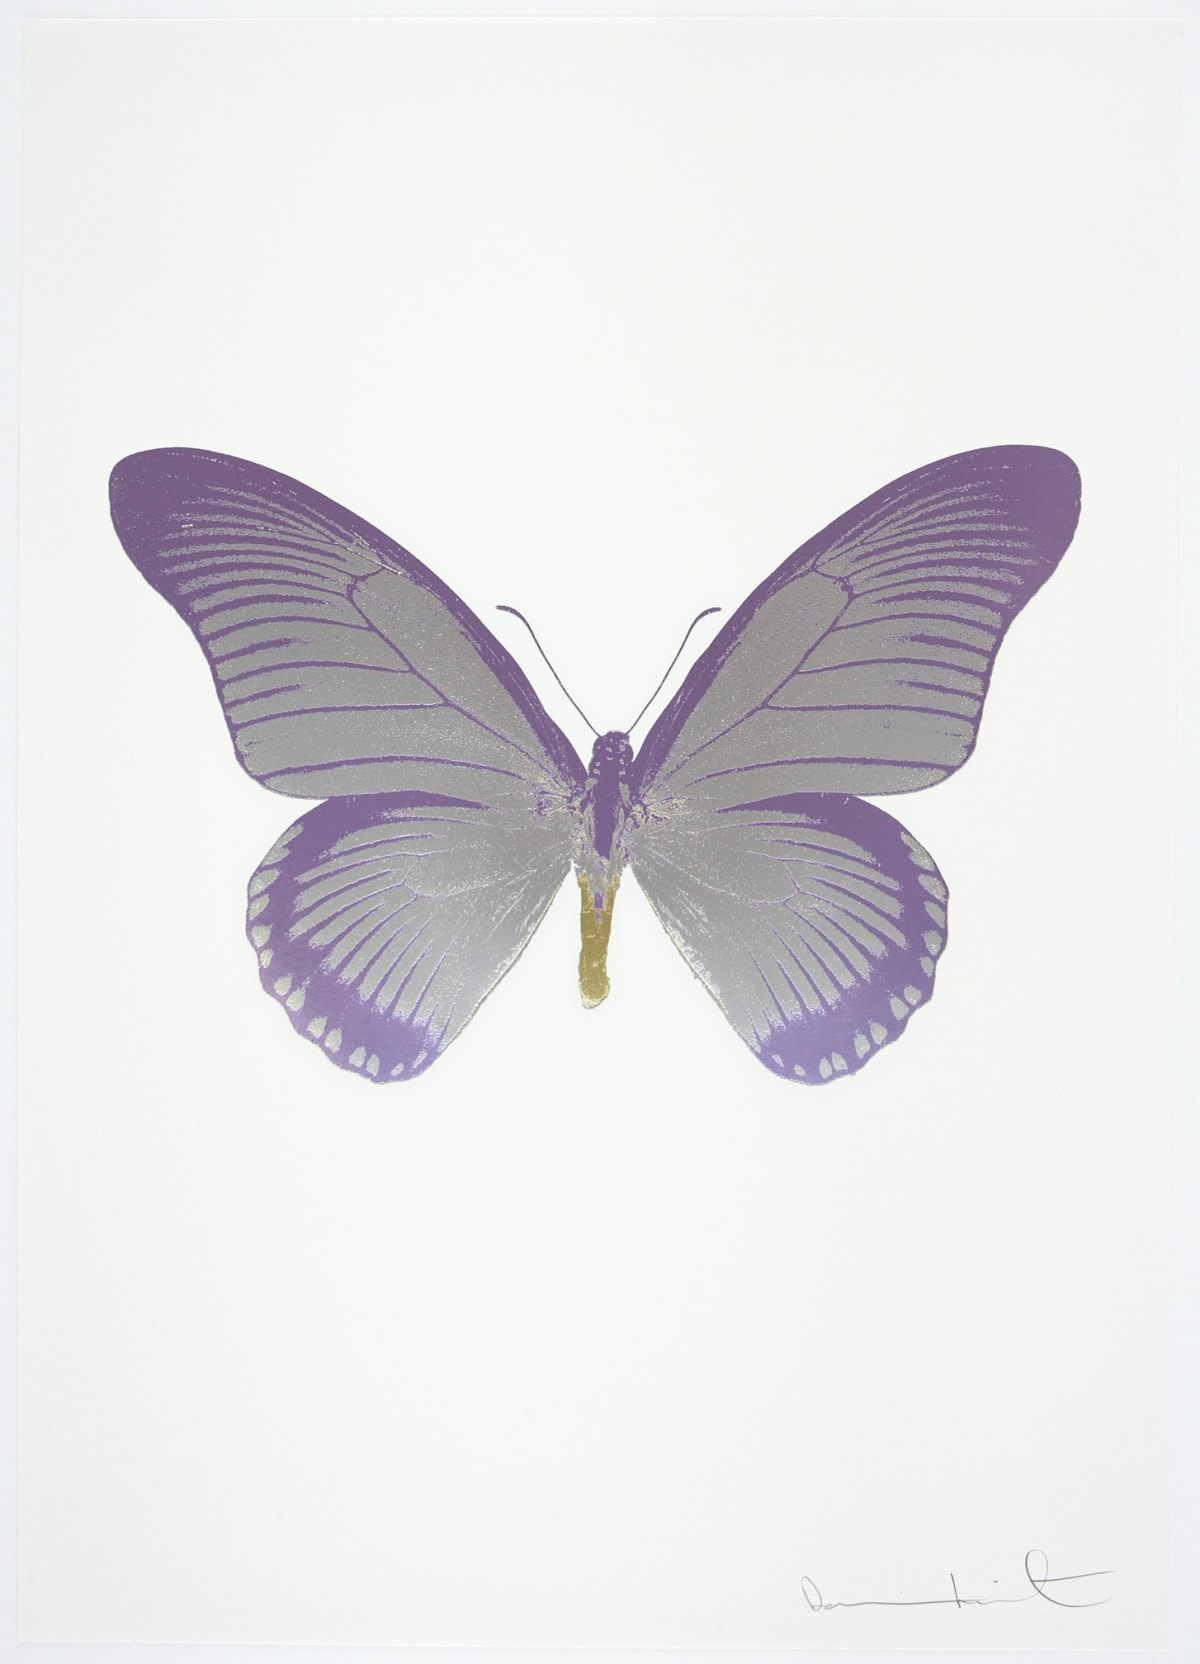 Damien Hirst The Souls IV - Silver Gloss/Aquarius/Cool Gold Damien Hirst butterfly foil print for sale Damien Hirst print for sale , 2010 3 colour foil block on 300gsm Arches 88 archival paper. Signed and numbered. Published by Paul Stolper and Other Criteria 72 x 51cm OC8031 / 1418-54 Edition of 15